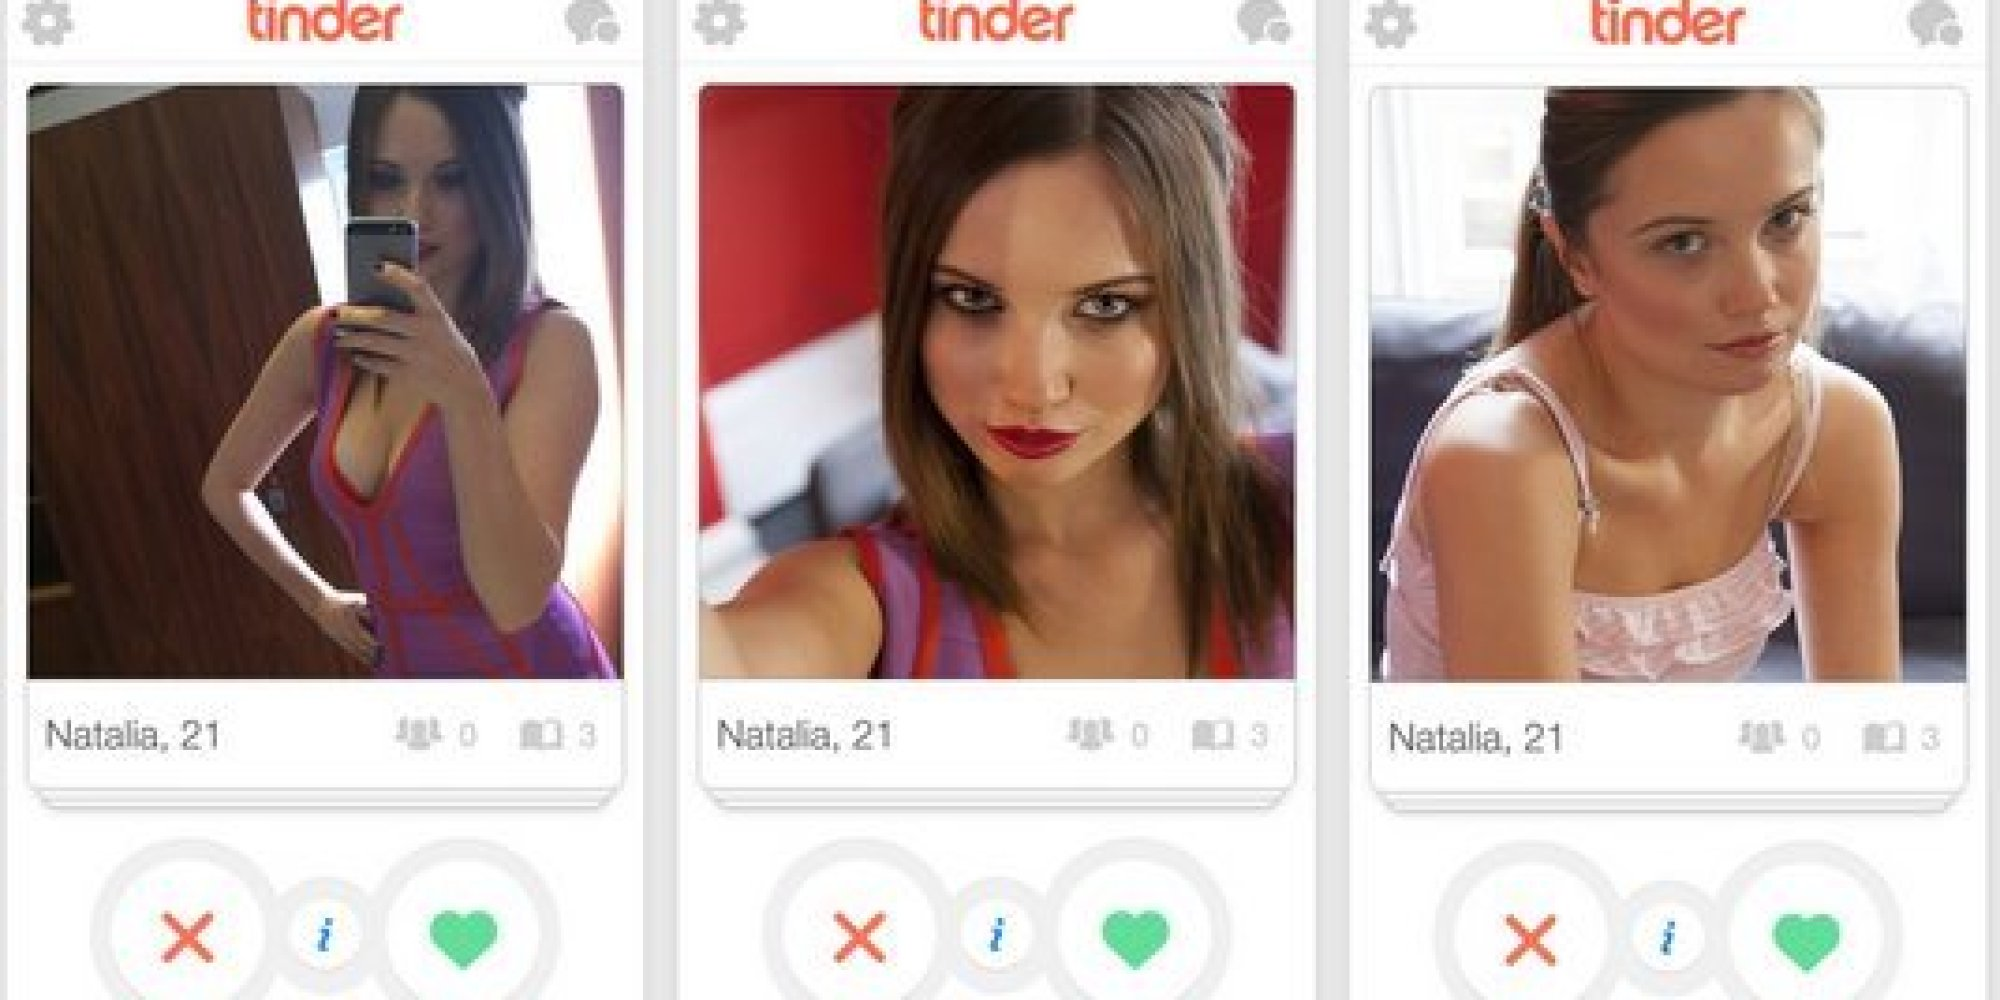 Personals is the text-only dating app that will get you